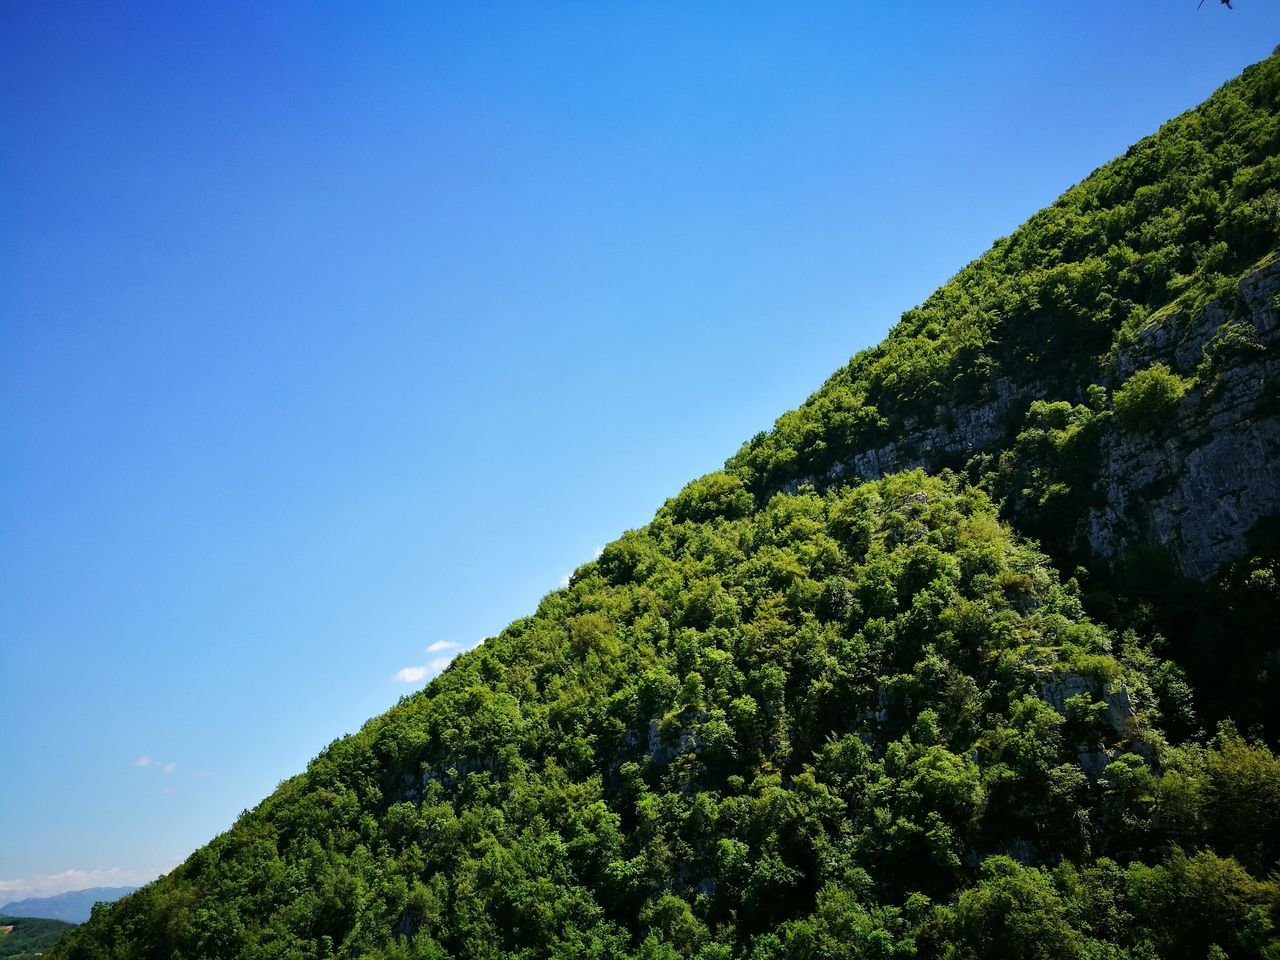 Low Angle View Of Tree In Forest Against Clear Blue Sky